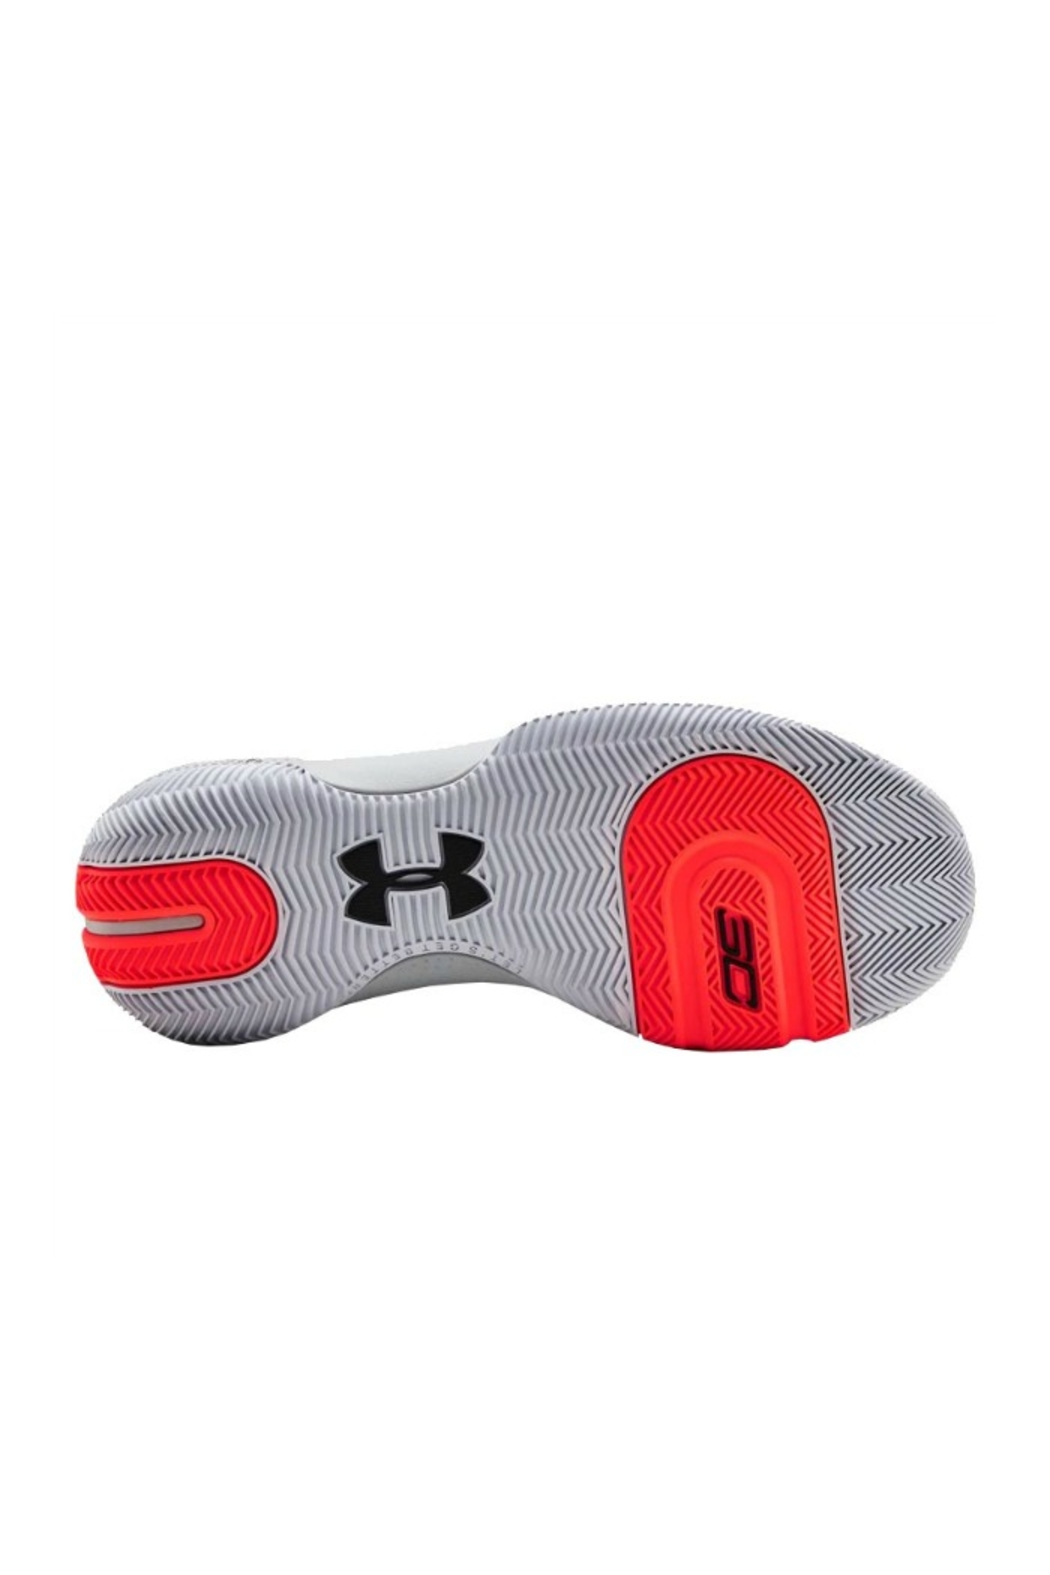 Under Armour SC 3 Zero III - Back Cropped Image